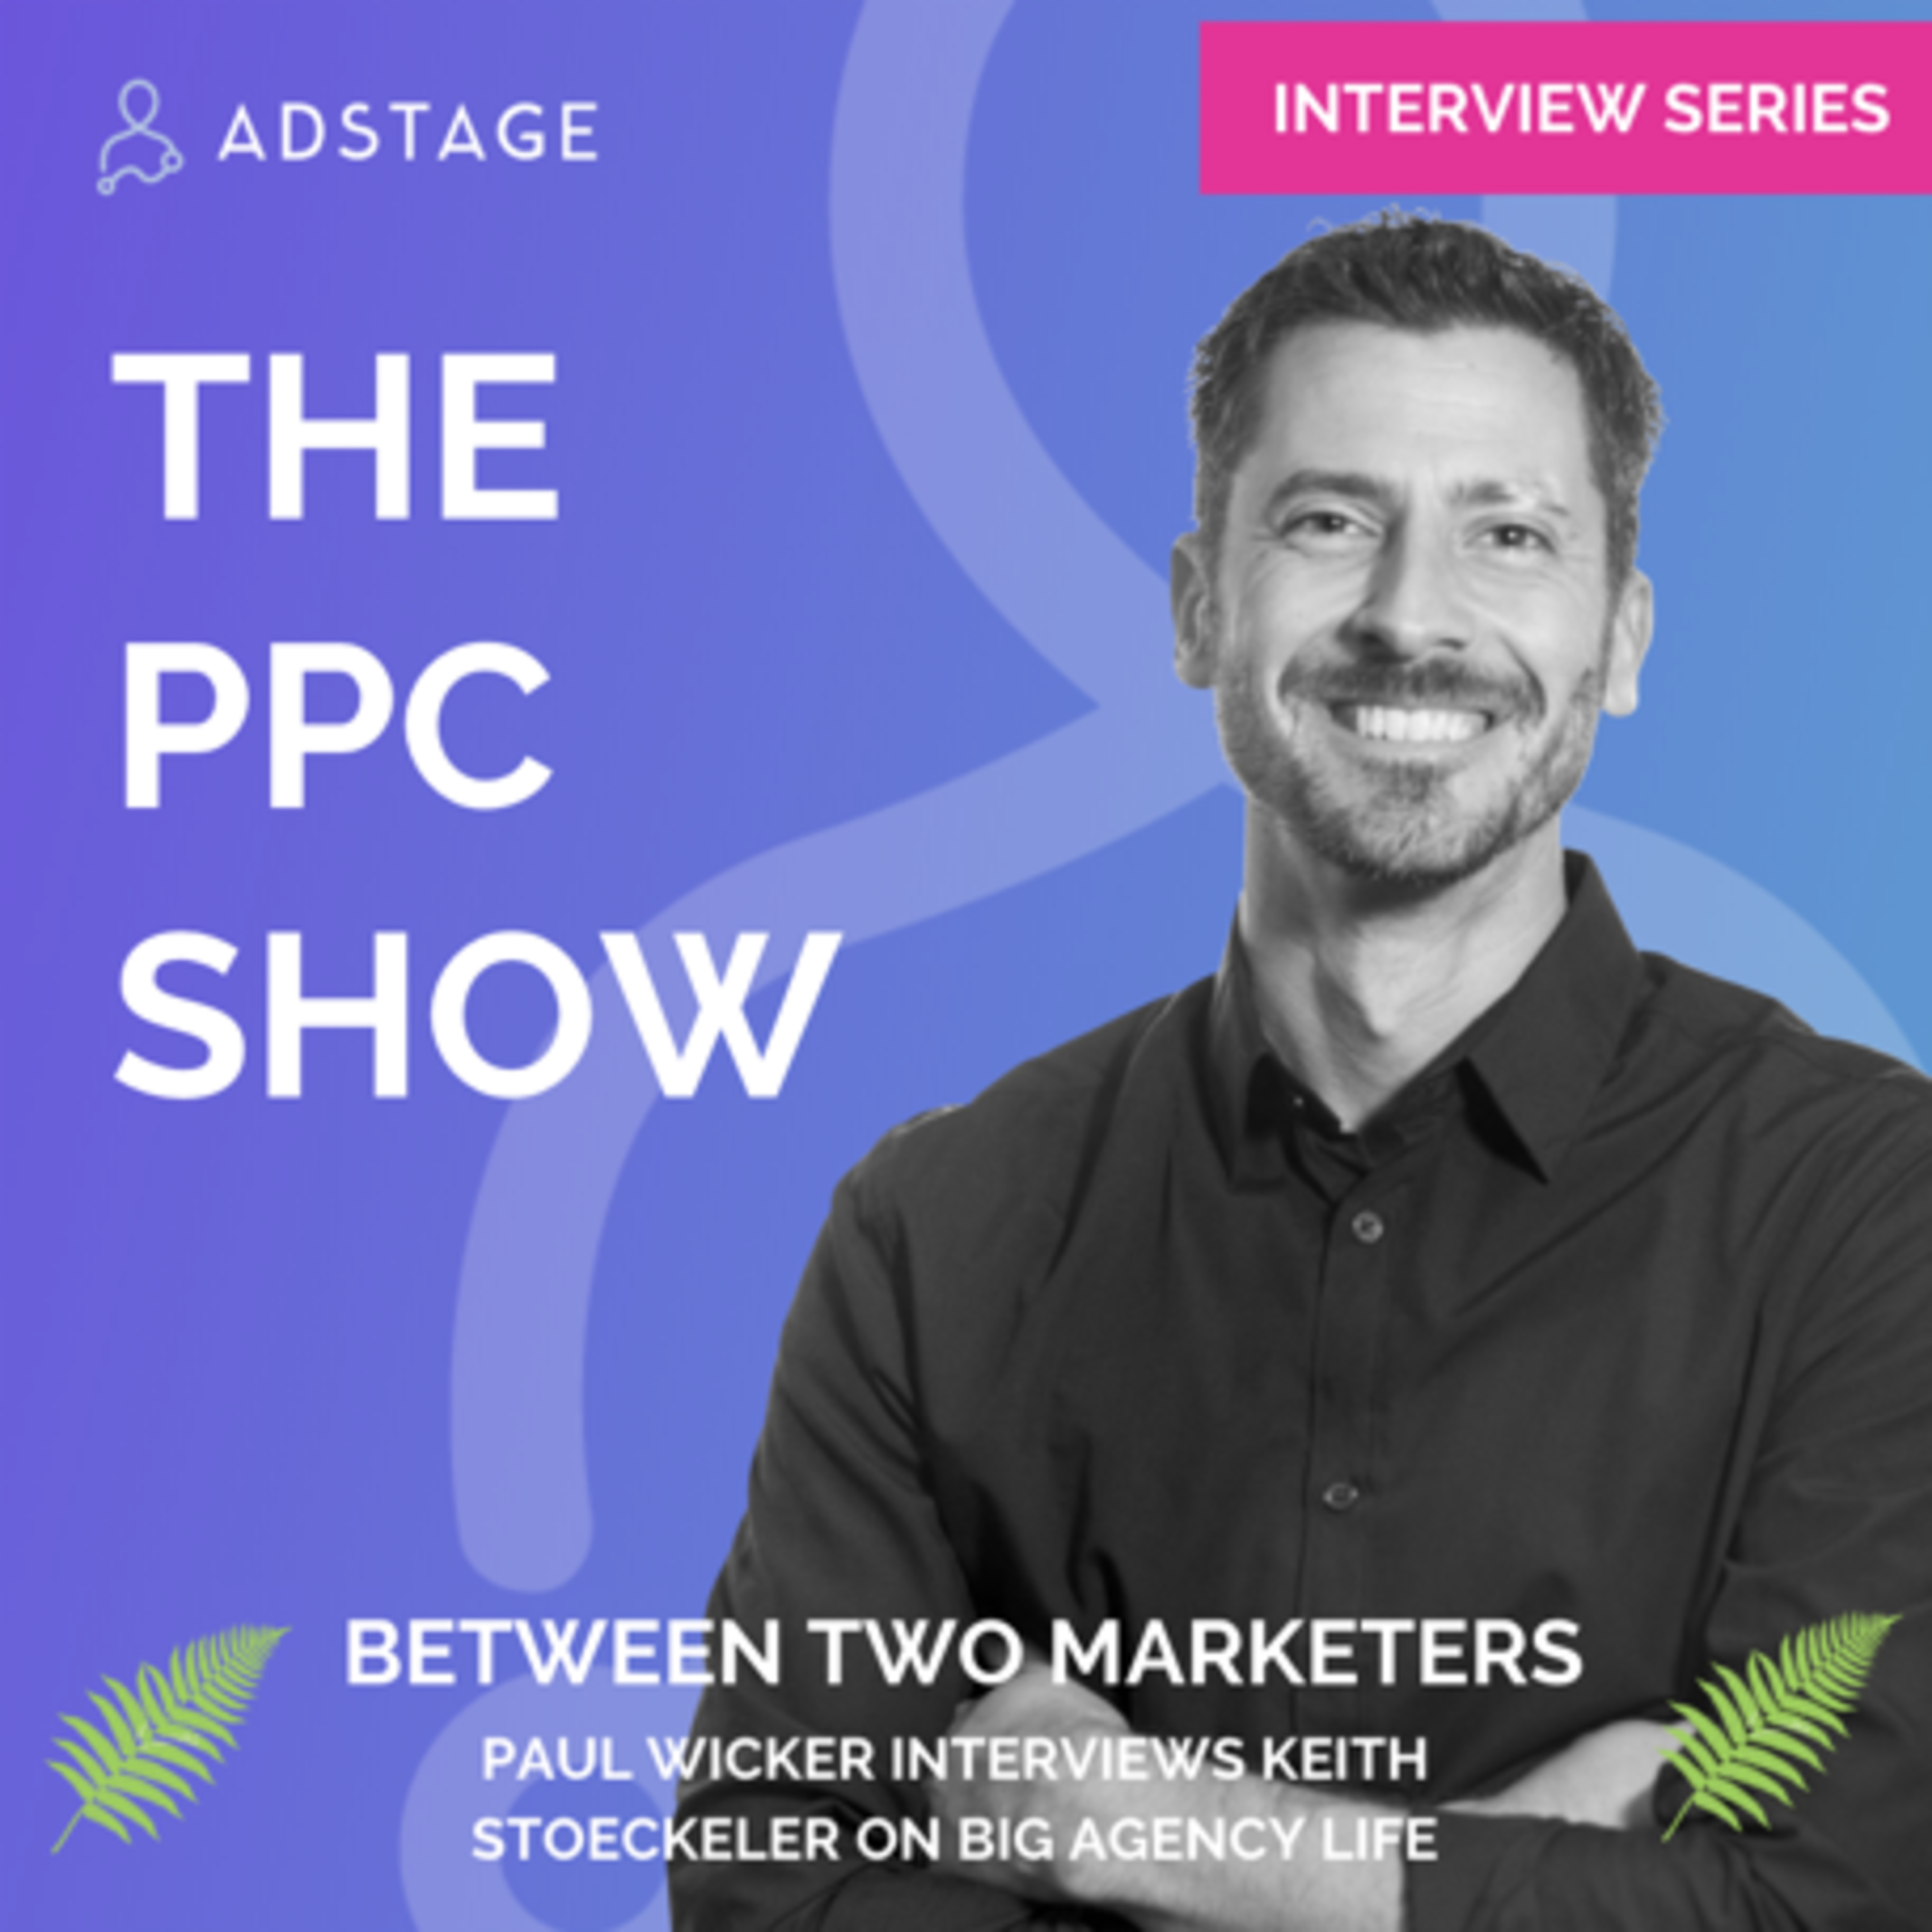 Between Two Marketers: Big Agency Life with Keith Stoeckeler from MKTG